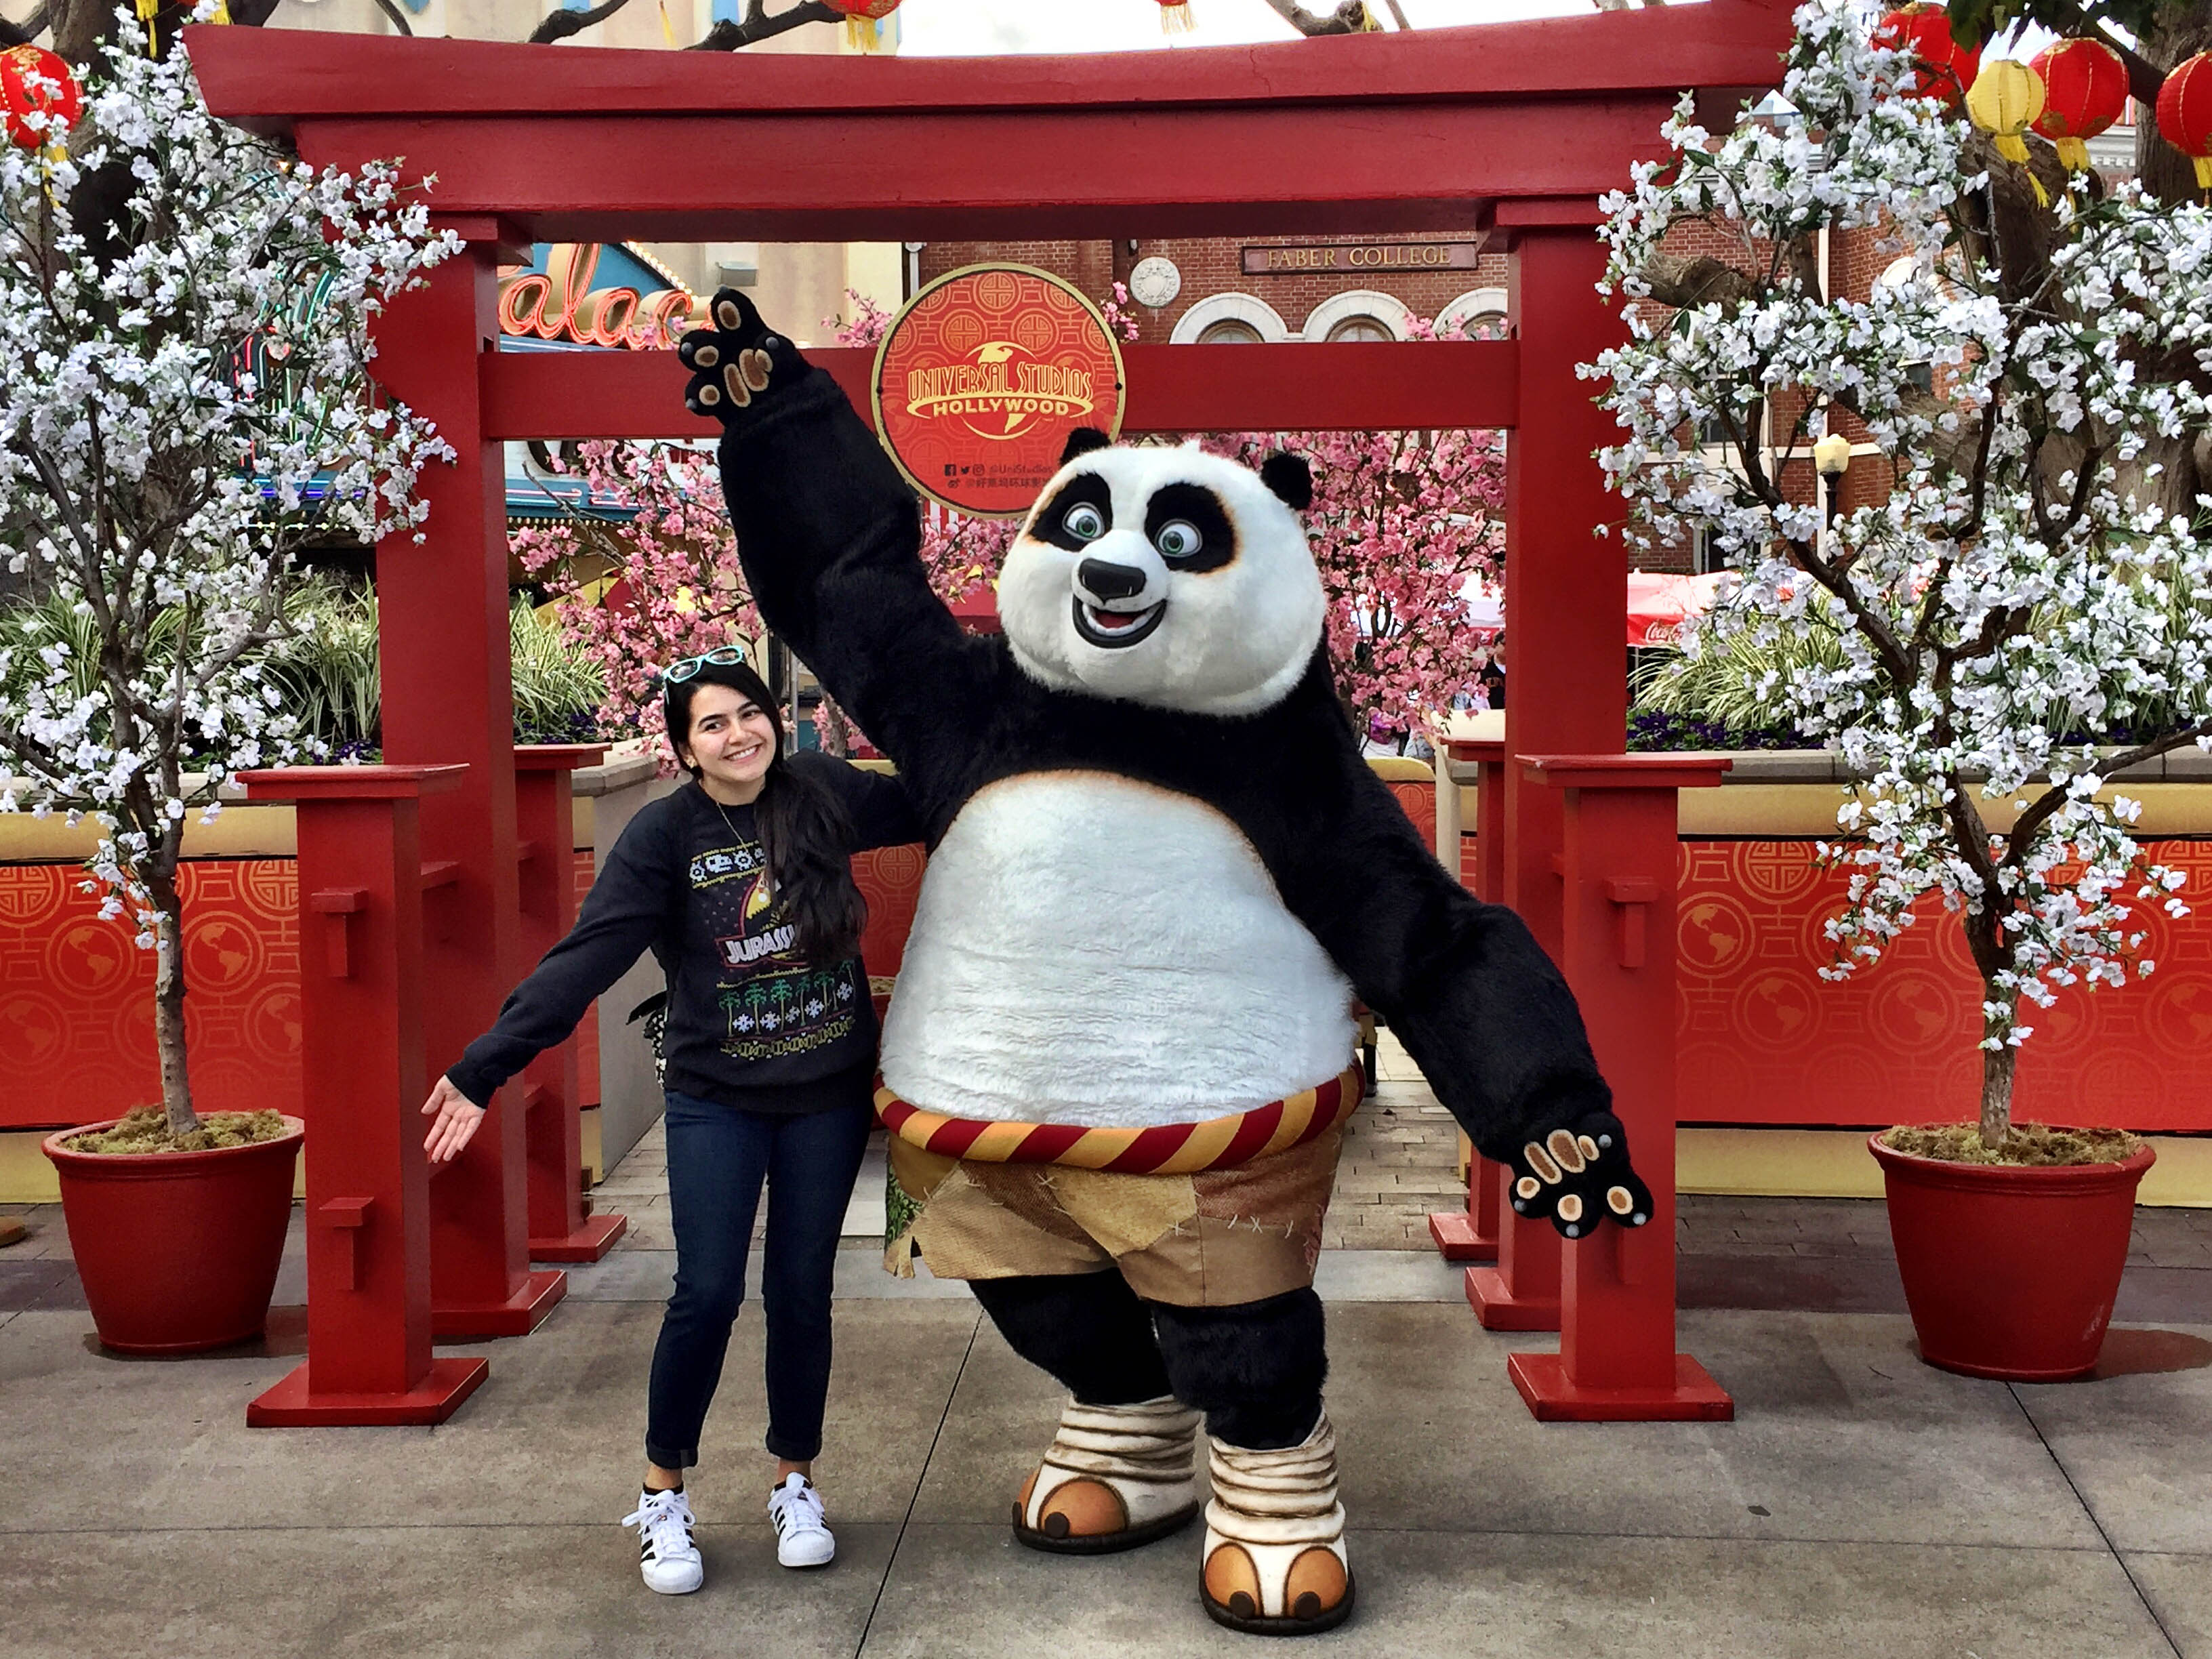 kung fu panda characters and more part of lunar new year